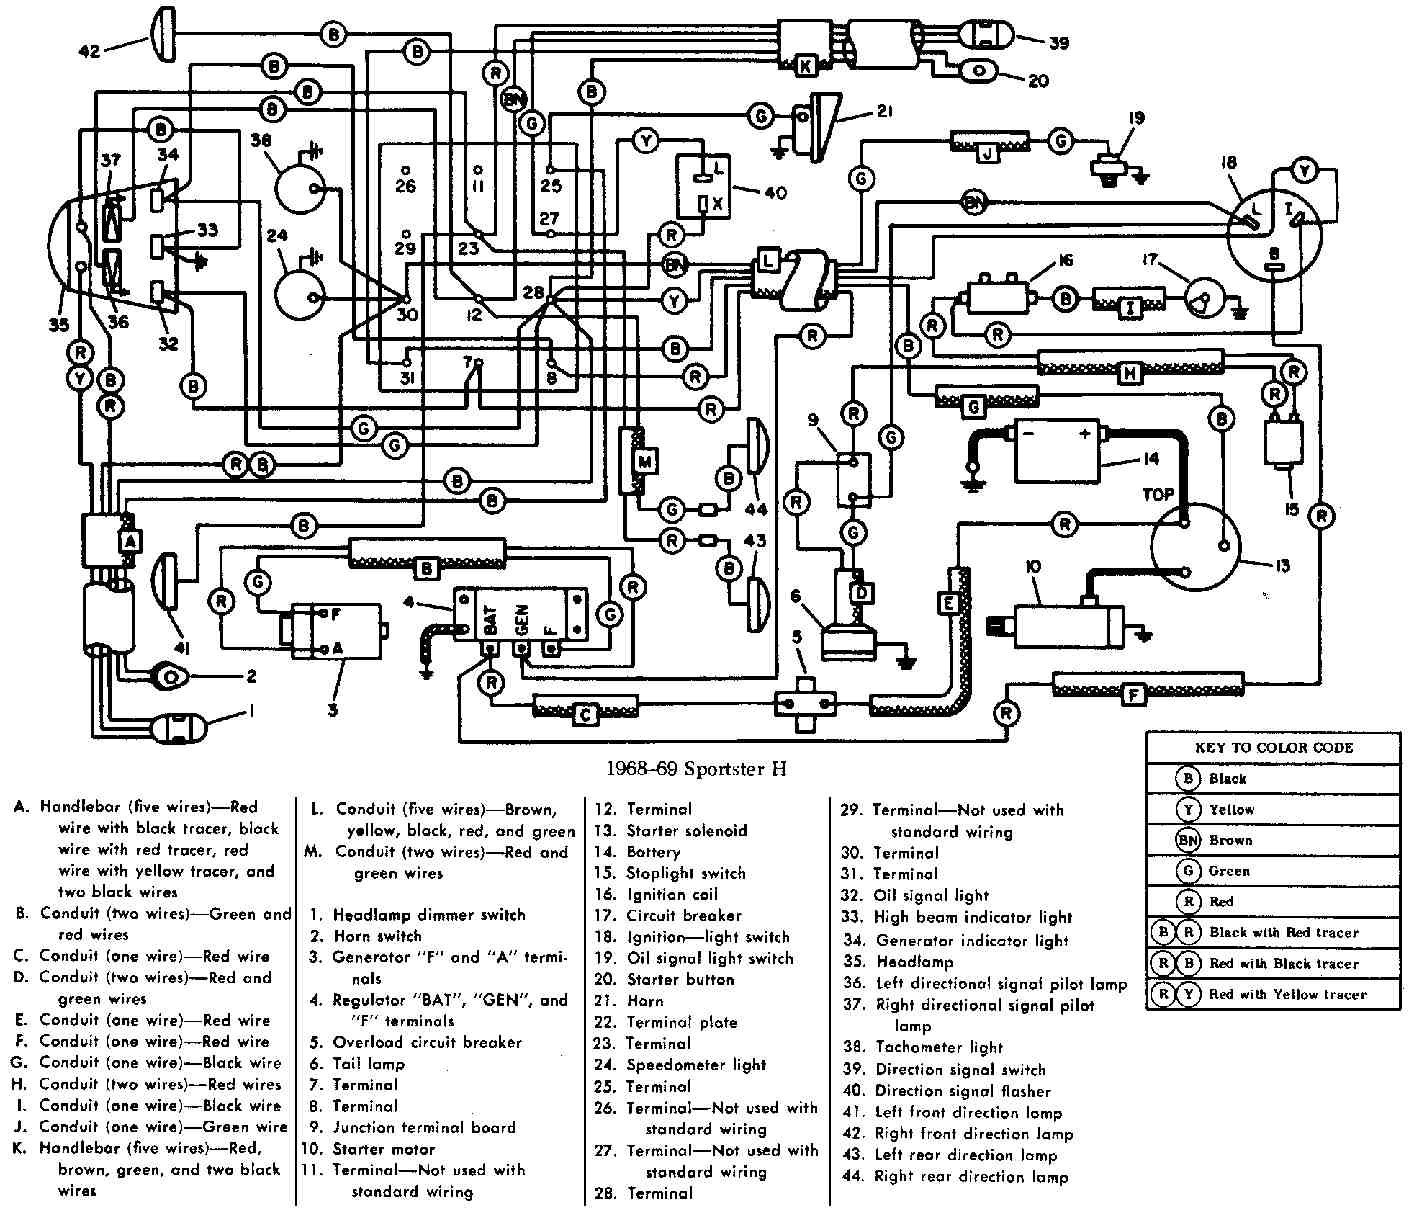 Harley Fxd Wiring Diagram - Technical Diagrams on